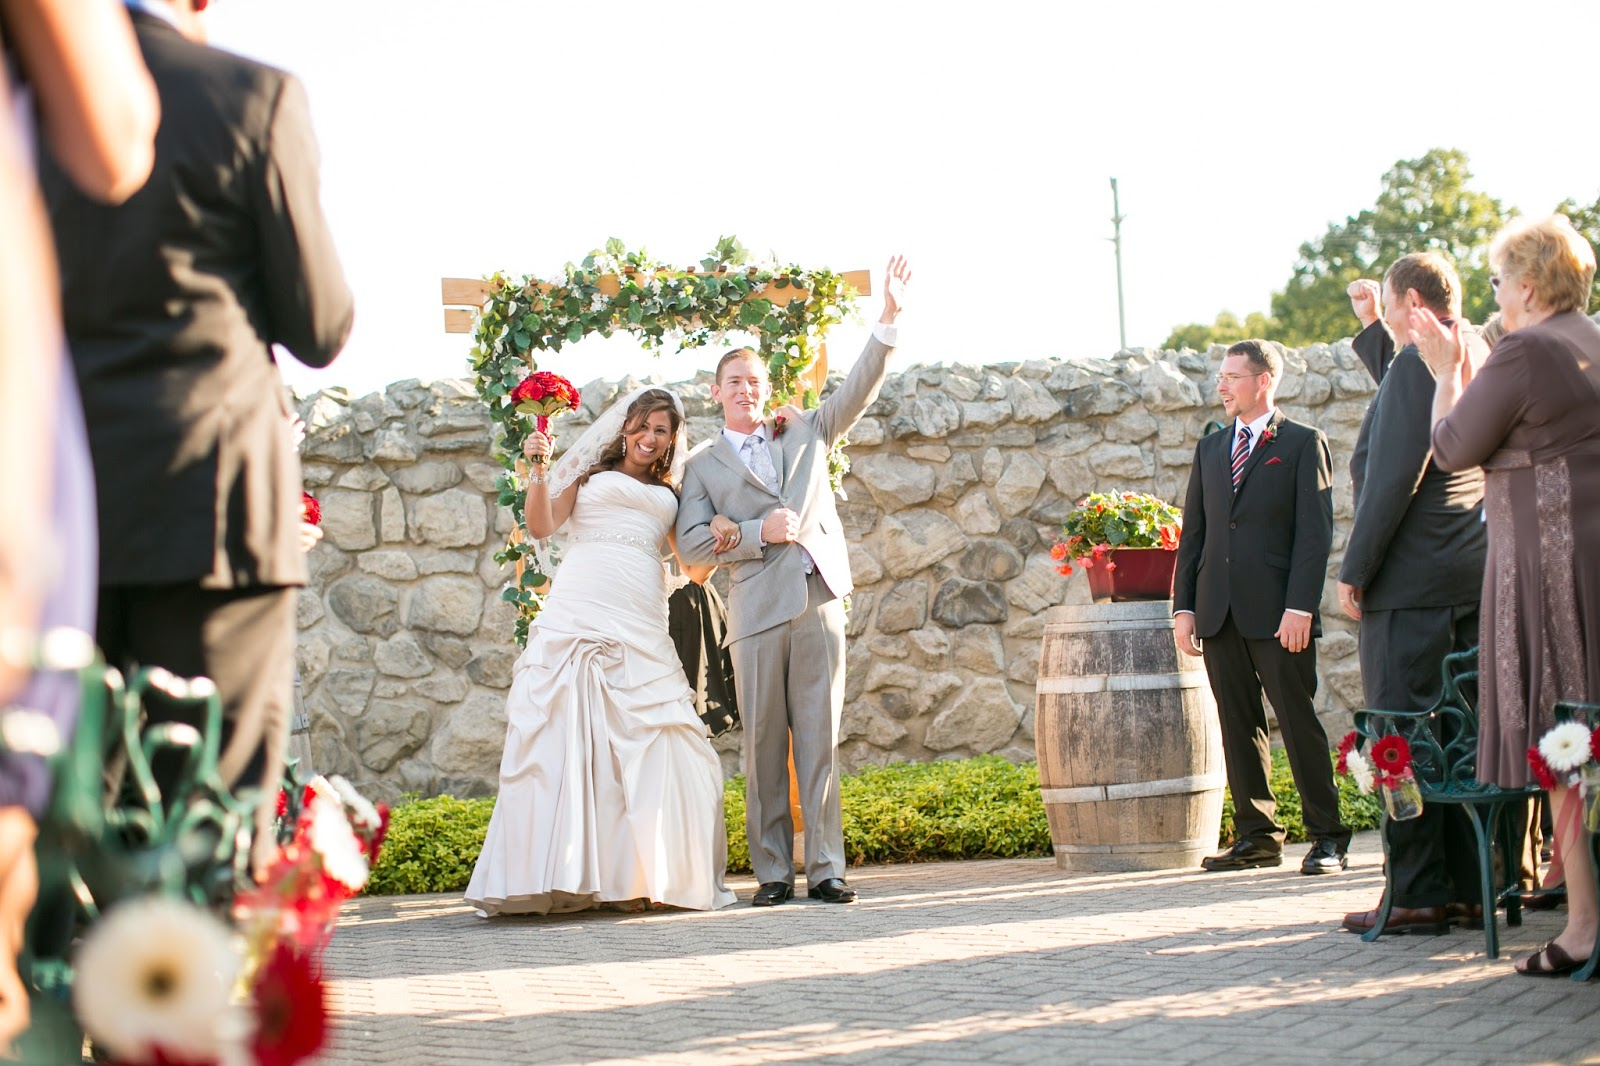 Hernder Estates Winery in Niagara outdoor wedding // thelifestyle-project.com